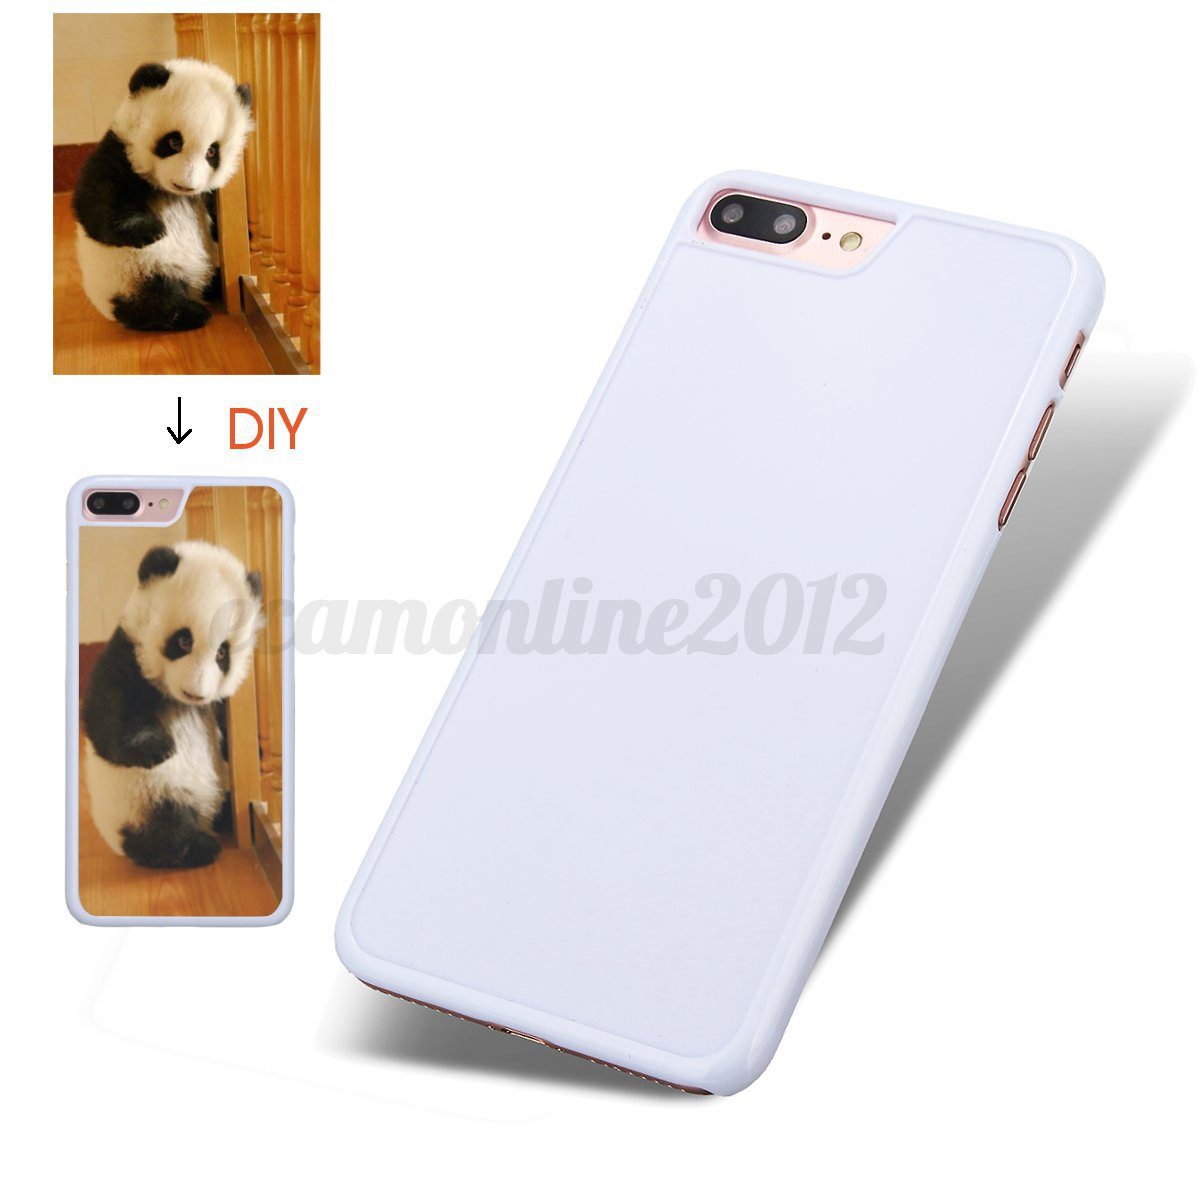 Jet white personalized design 3d custom picture diy cover for Diy custom phone case